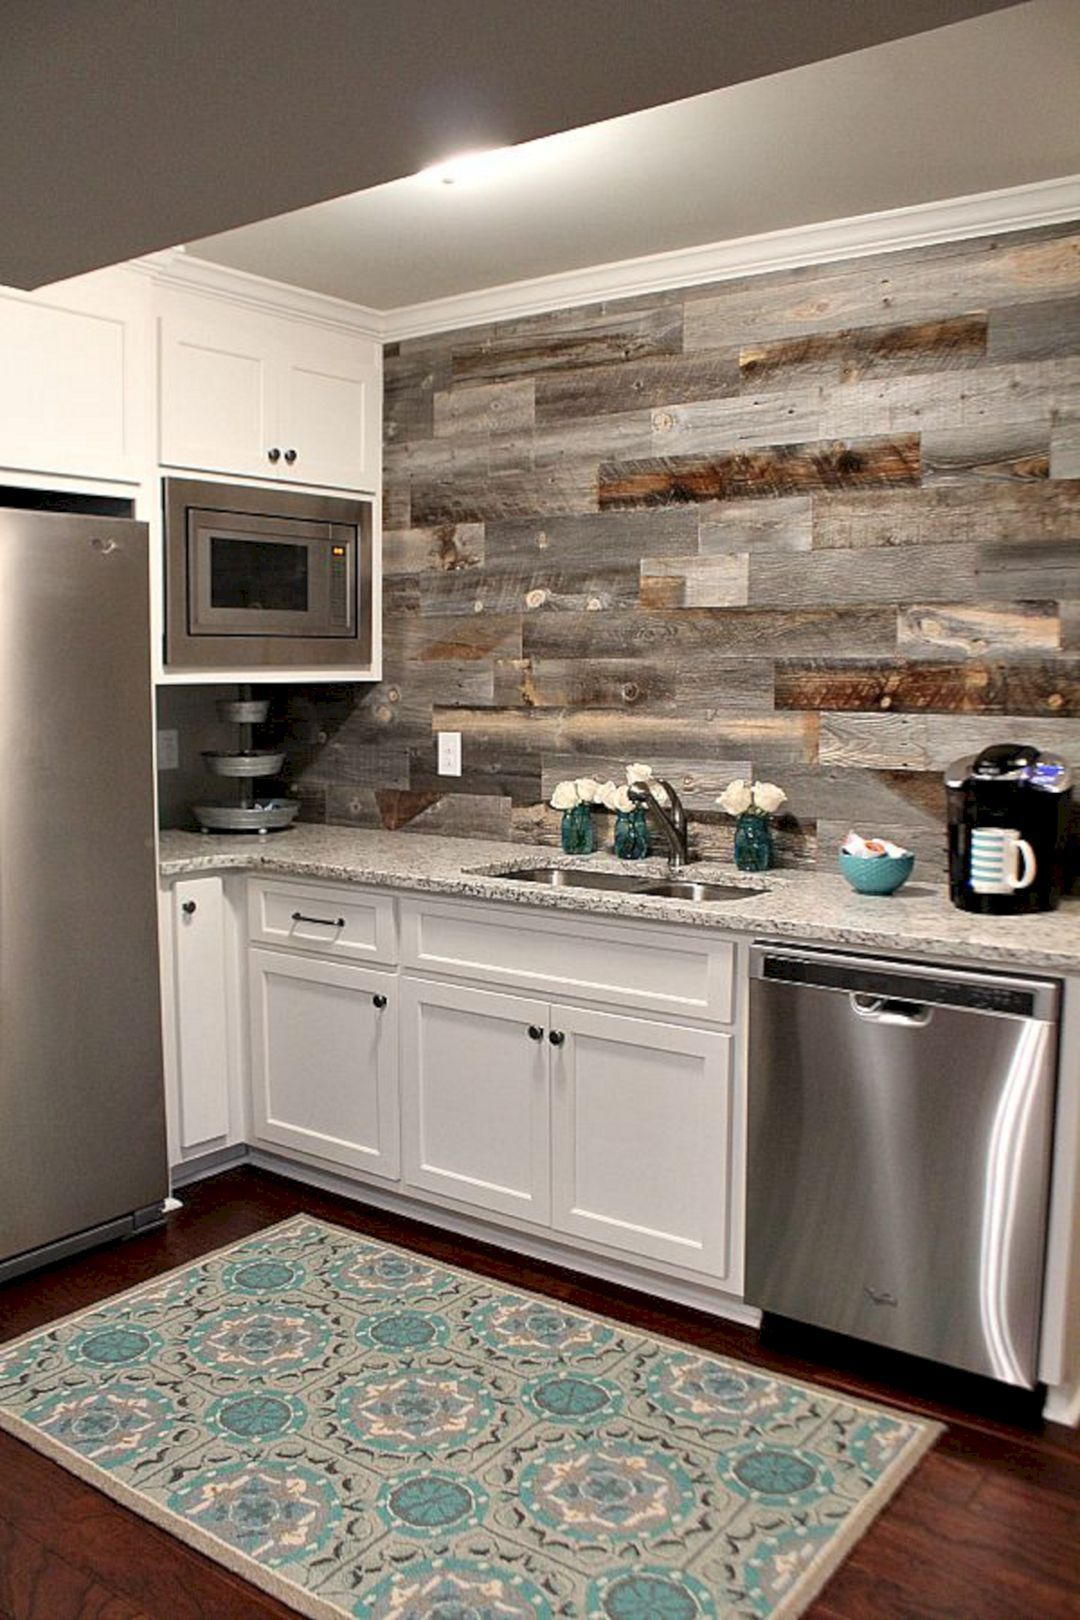 Awesome Basement Apartment Ideas You Have To Know 55+ Best Inspirations & Awesome Basement Apartment Ideas You Have To Know: 55+ Best ...